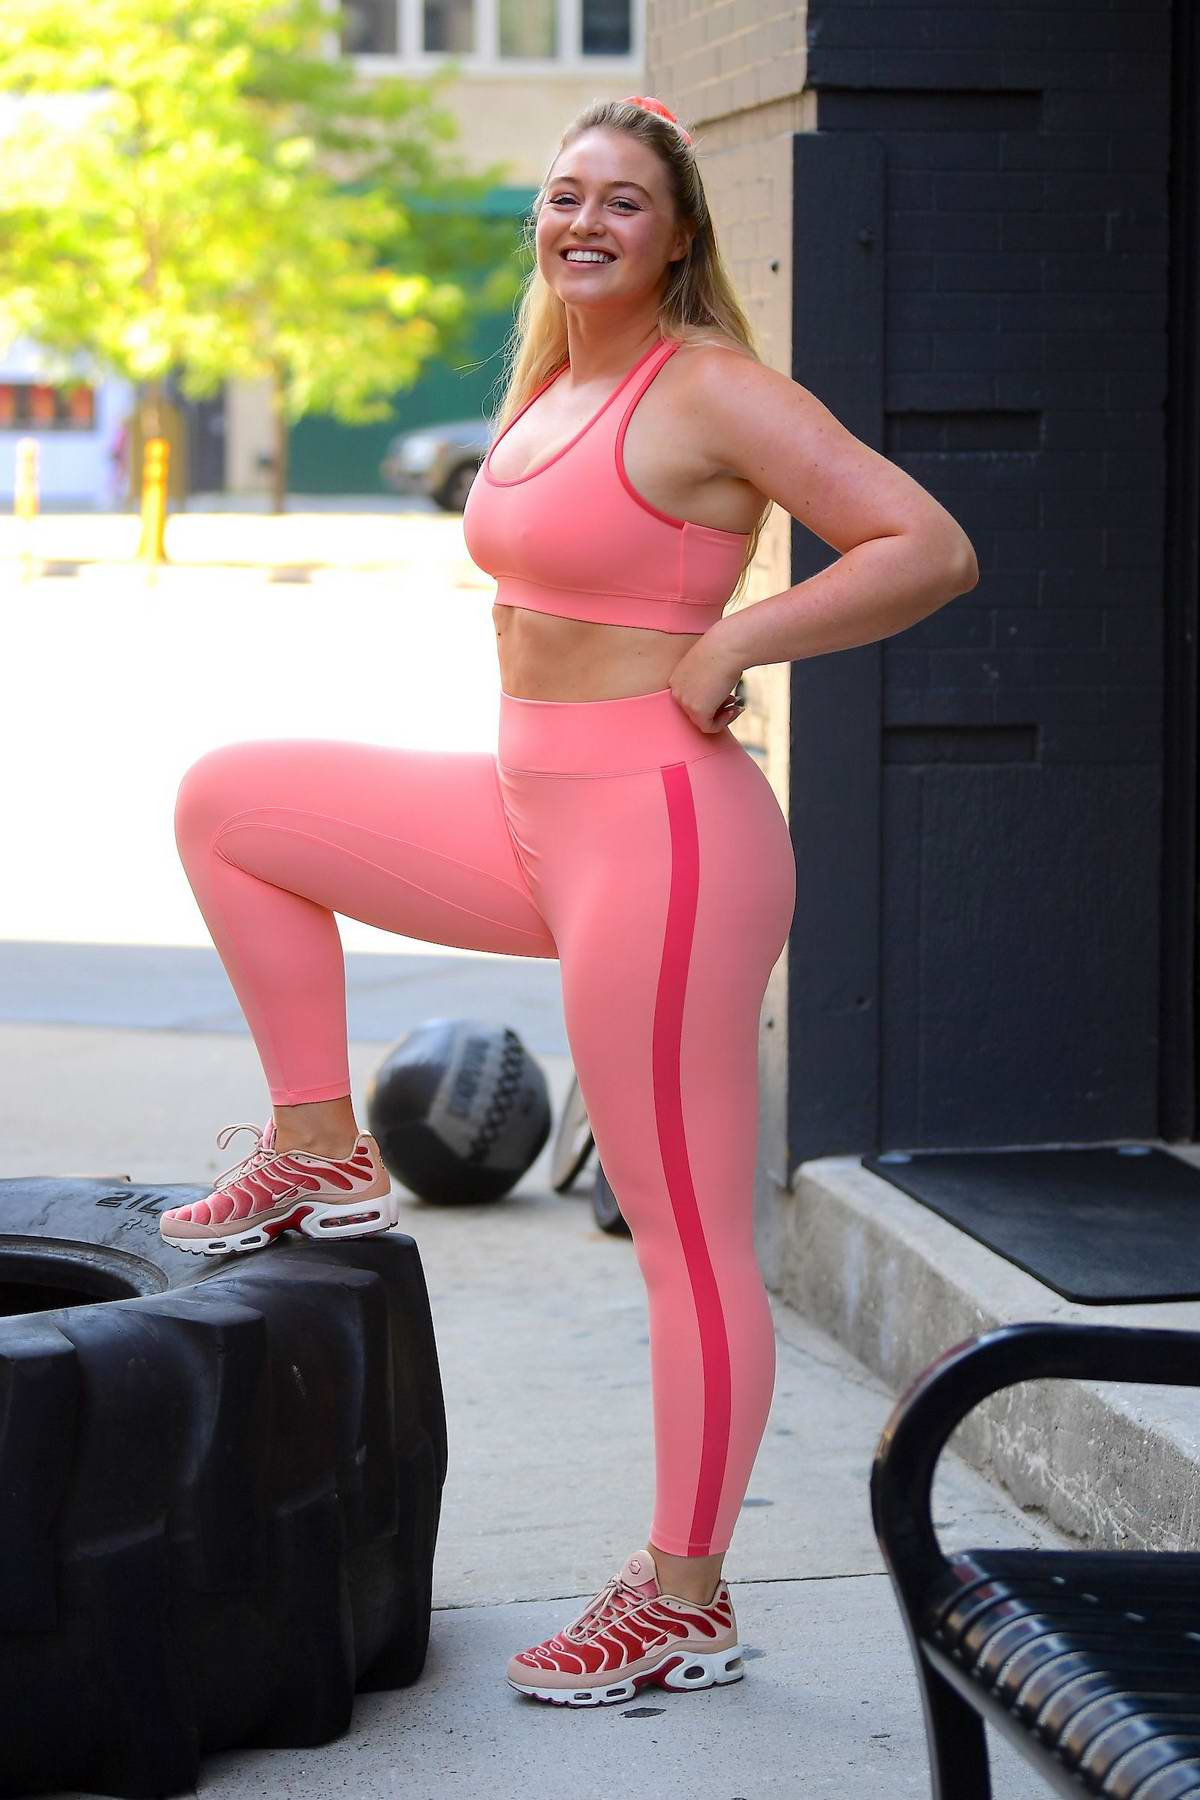 Iskra Lawrence looks great in a pink crop top and matching leggings during a workout session at Dogpound gym in New York City